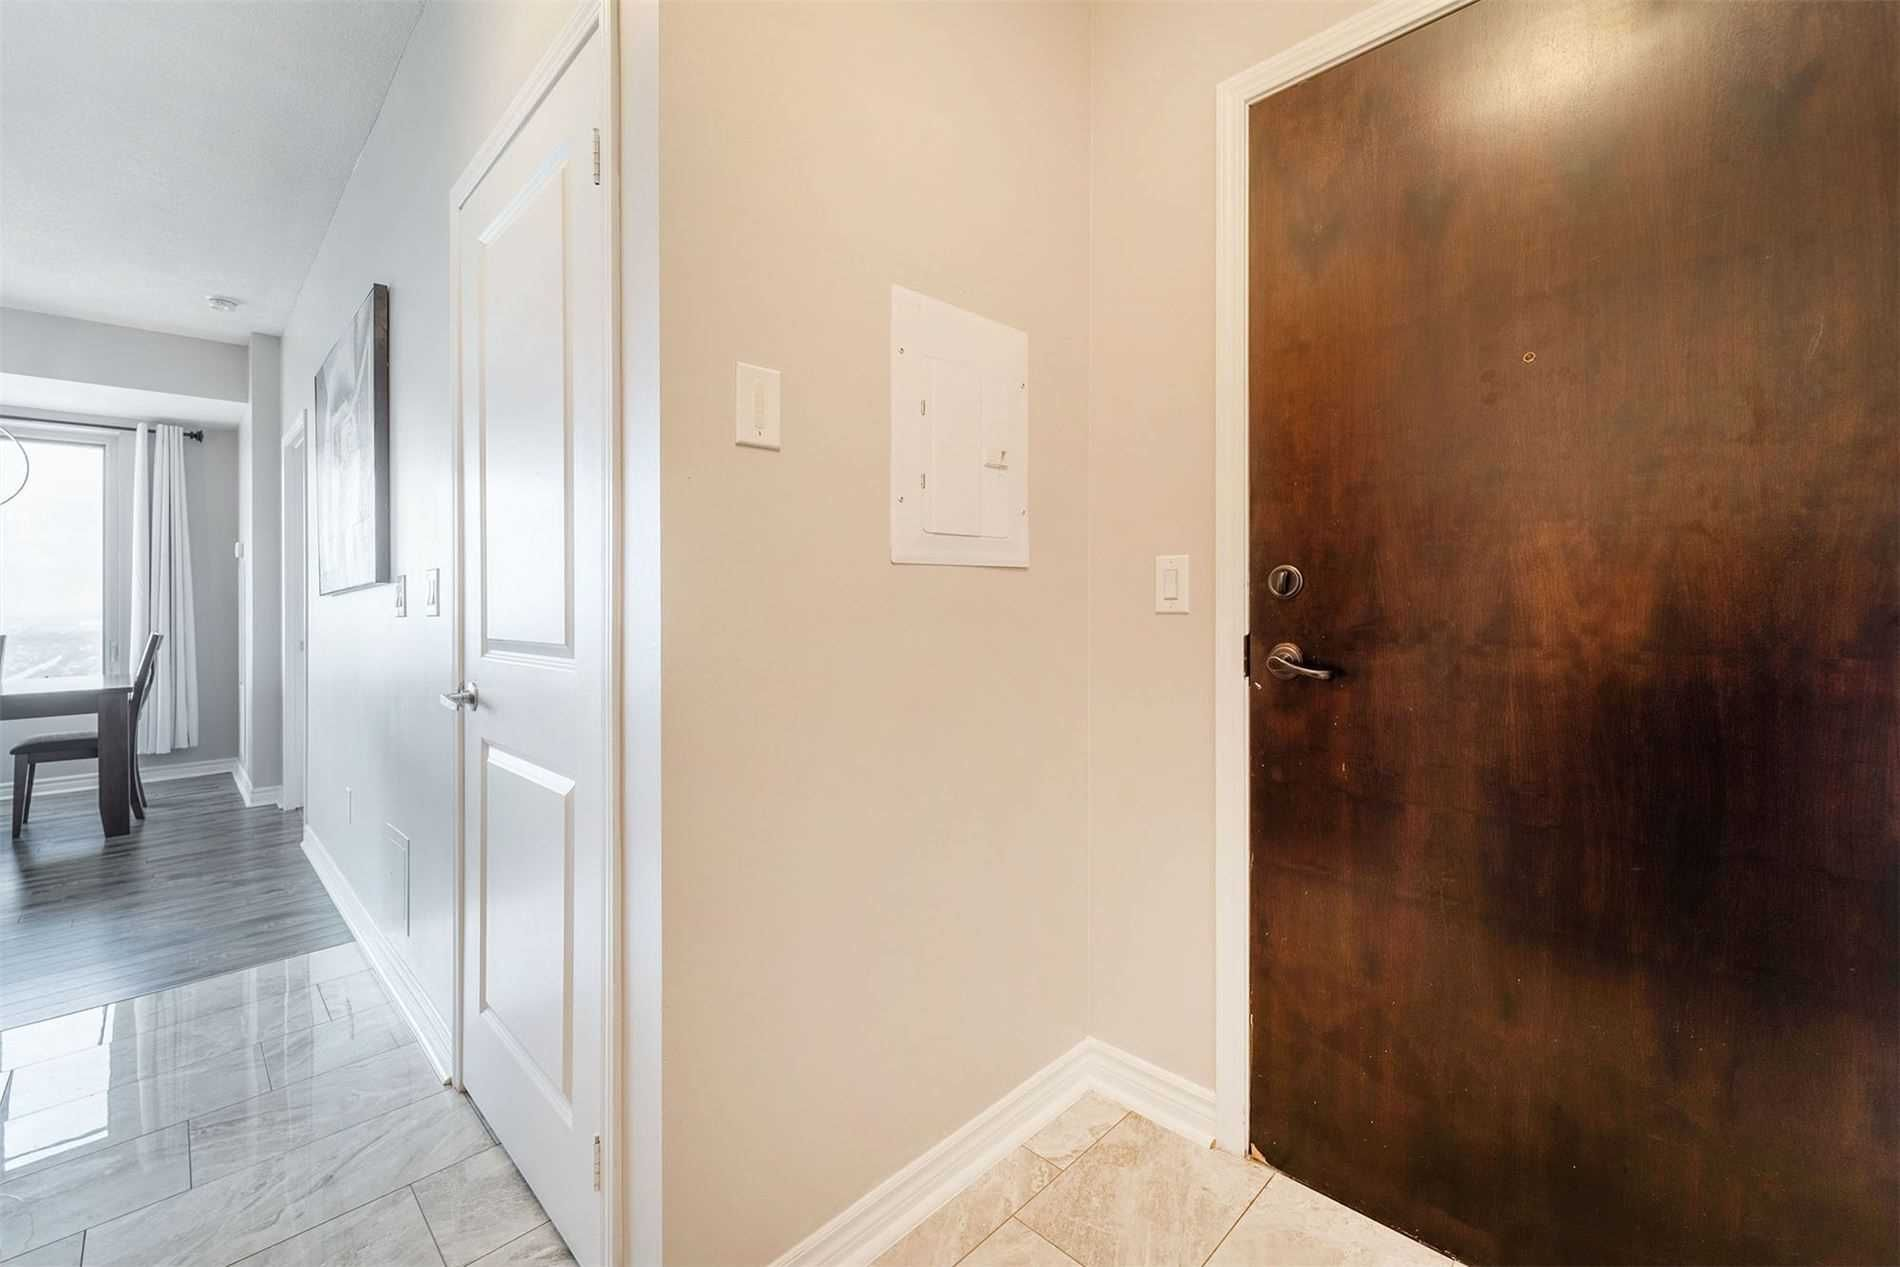 385 Prince Of Wales Dr, unit 3211 for sale in Toronto - image #2